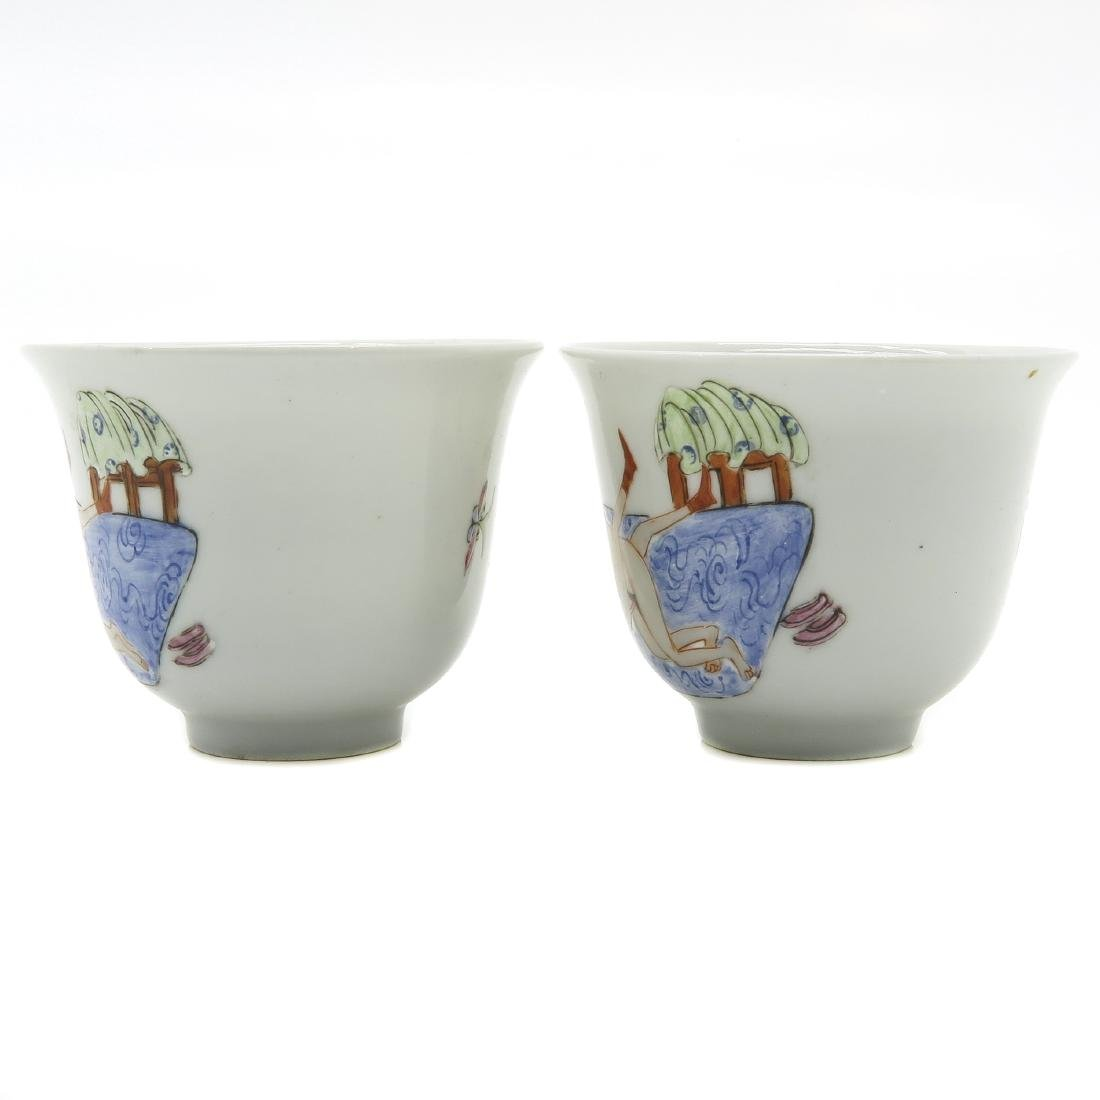 Lot of 2 Erotic Decor Cups - 2